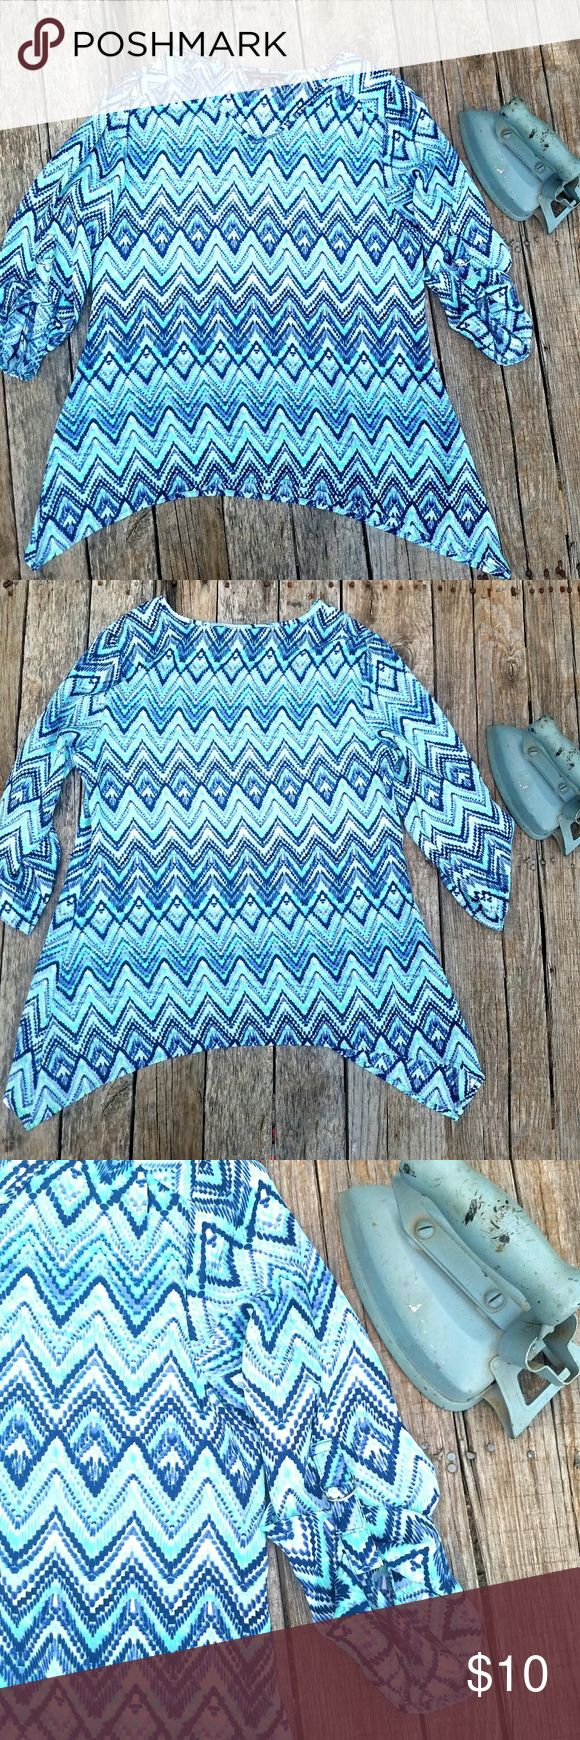 Zac & Rachel Chevron top Super cute! Zac & Rachel Chevron top. 3/4 Sleeve with Silver accent clasps. Teal, Navy & purple chevron print. Light weight & flattering fit. Zac & Rachel Tops Blouses